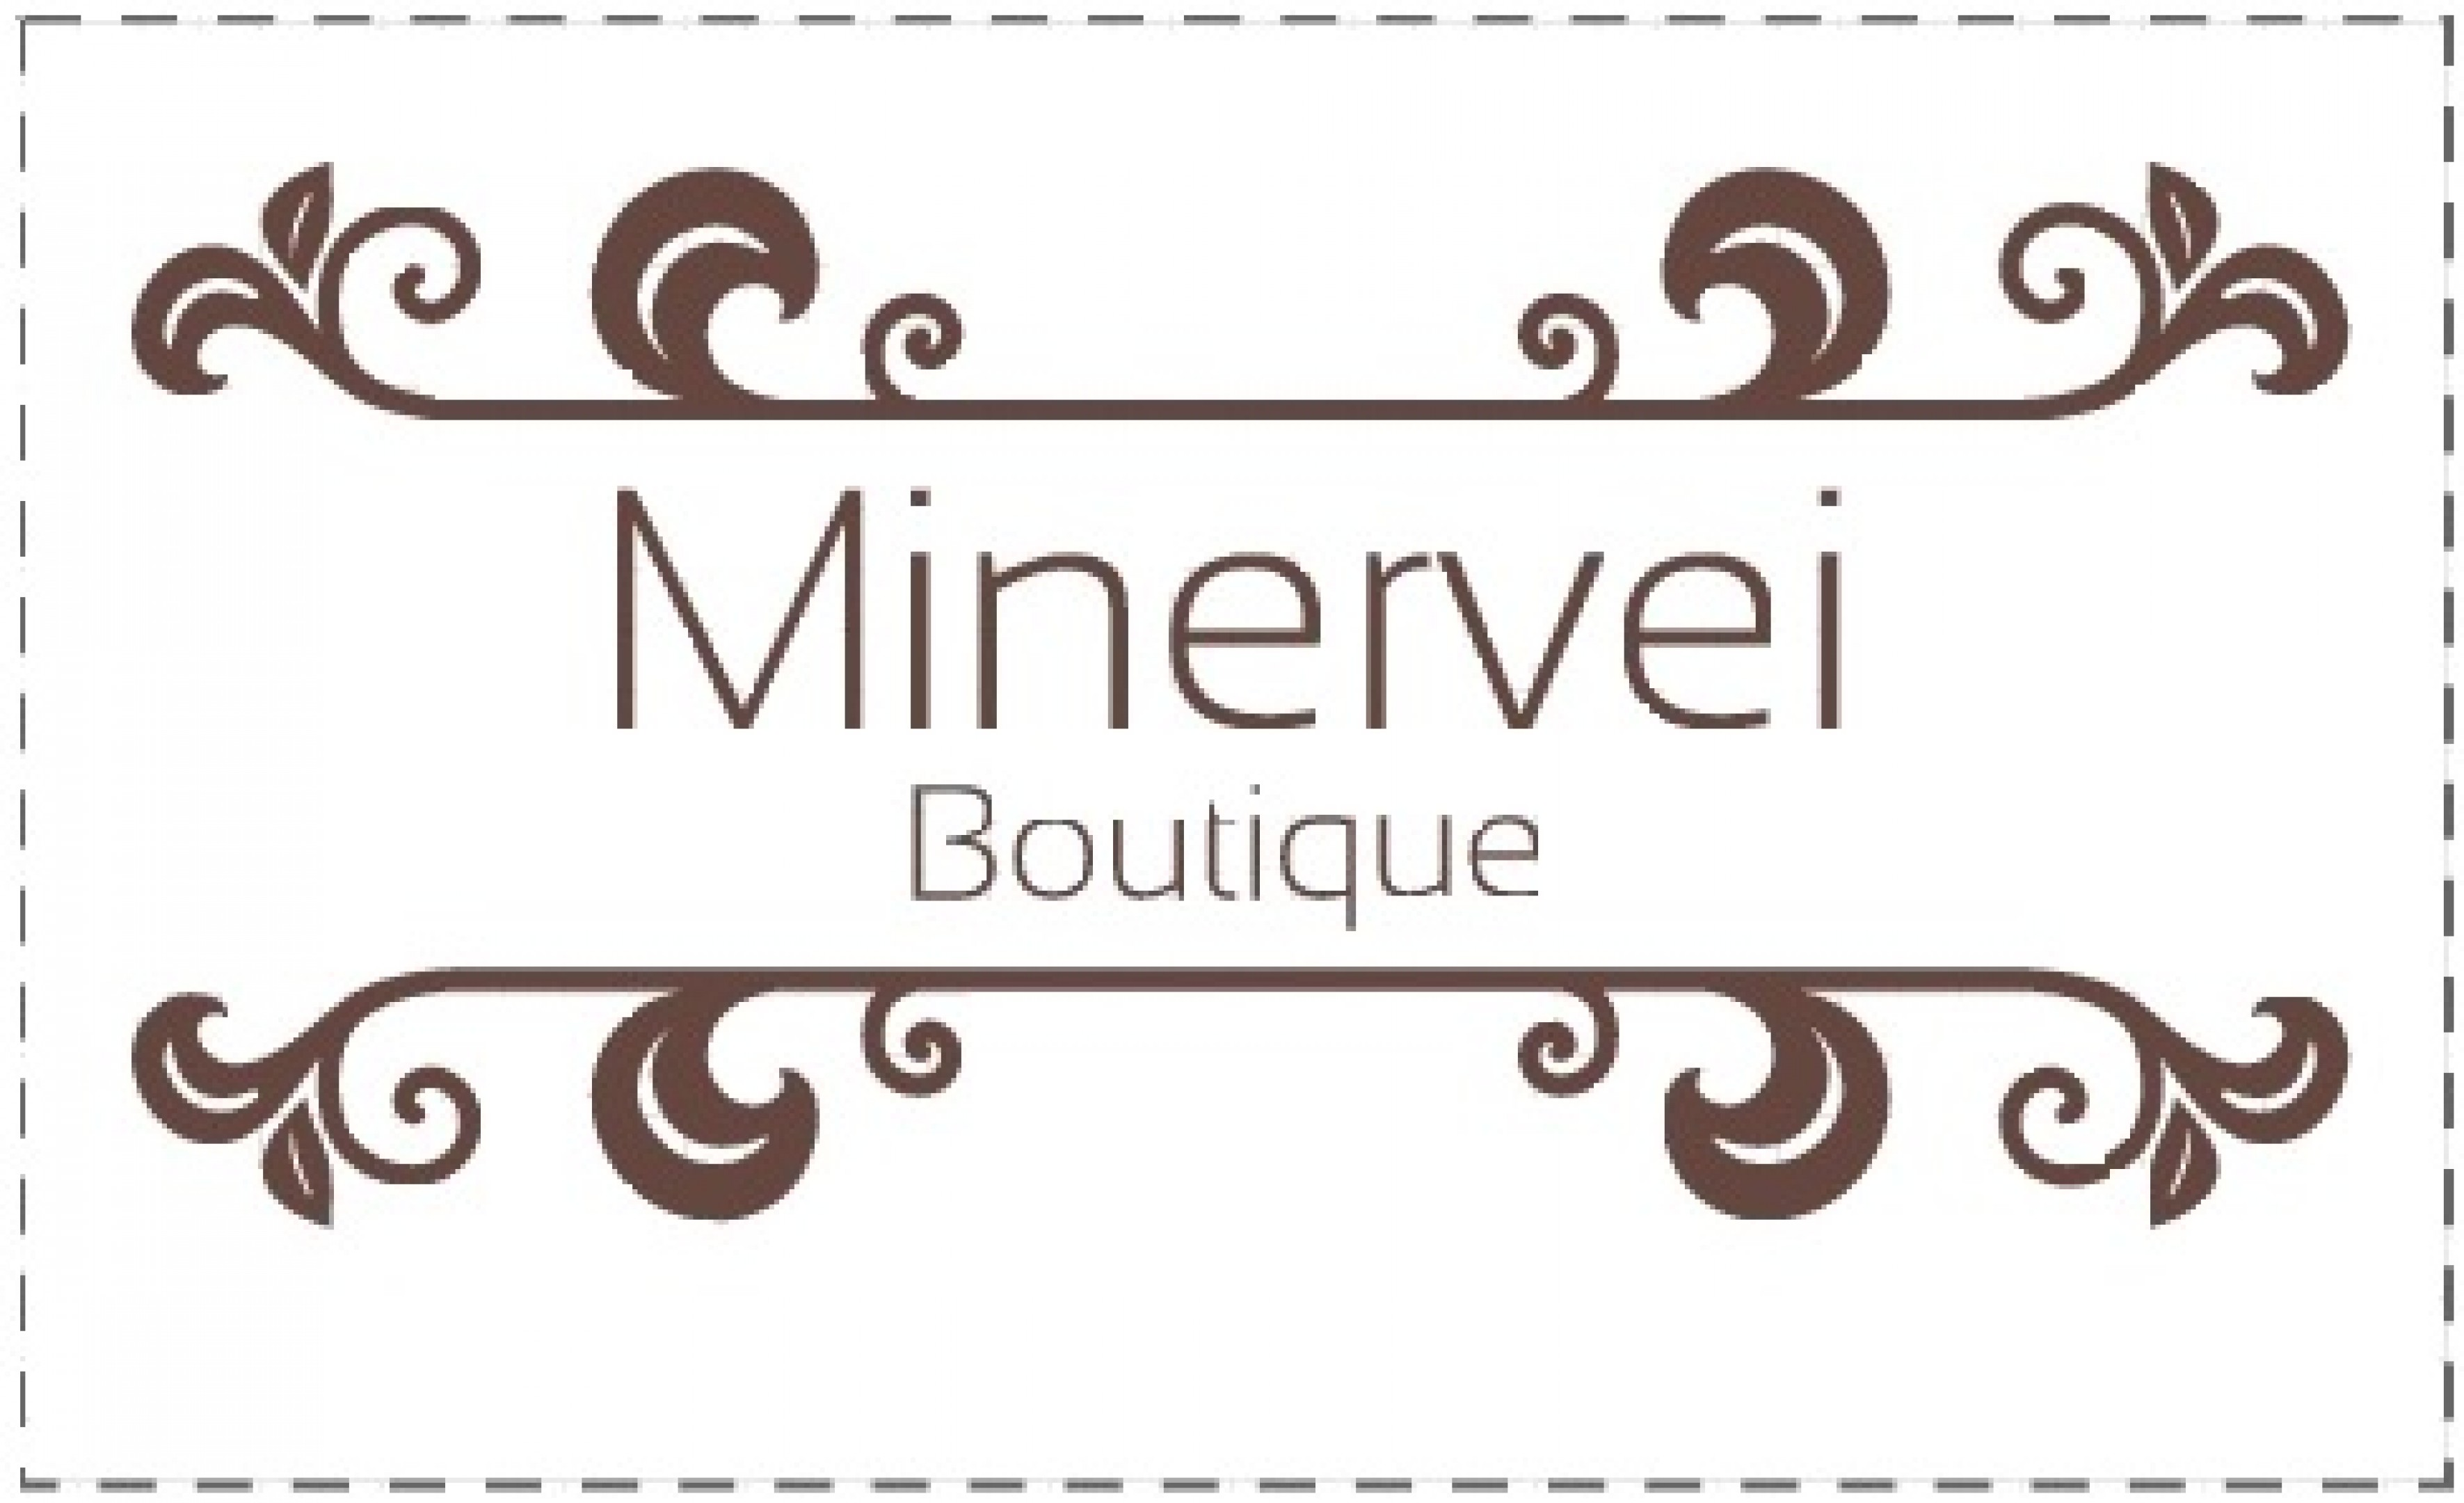 Logo Minervei Boutique